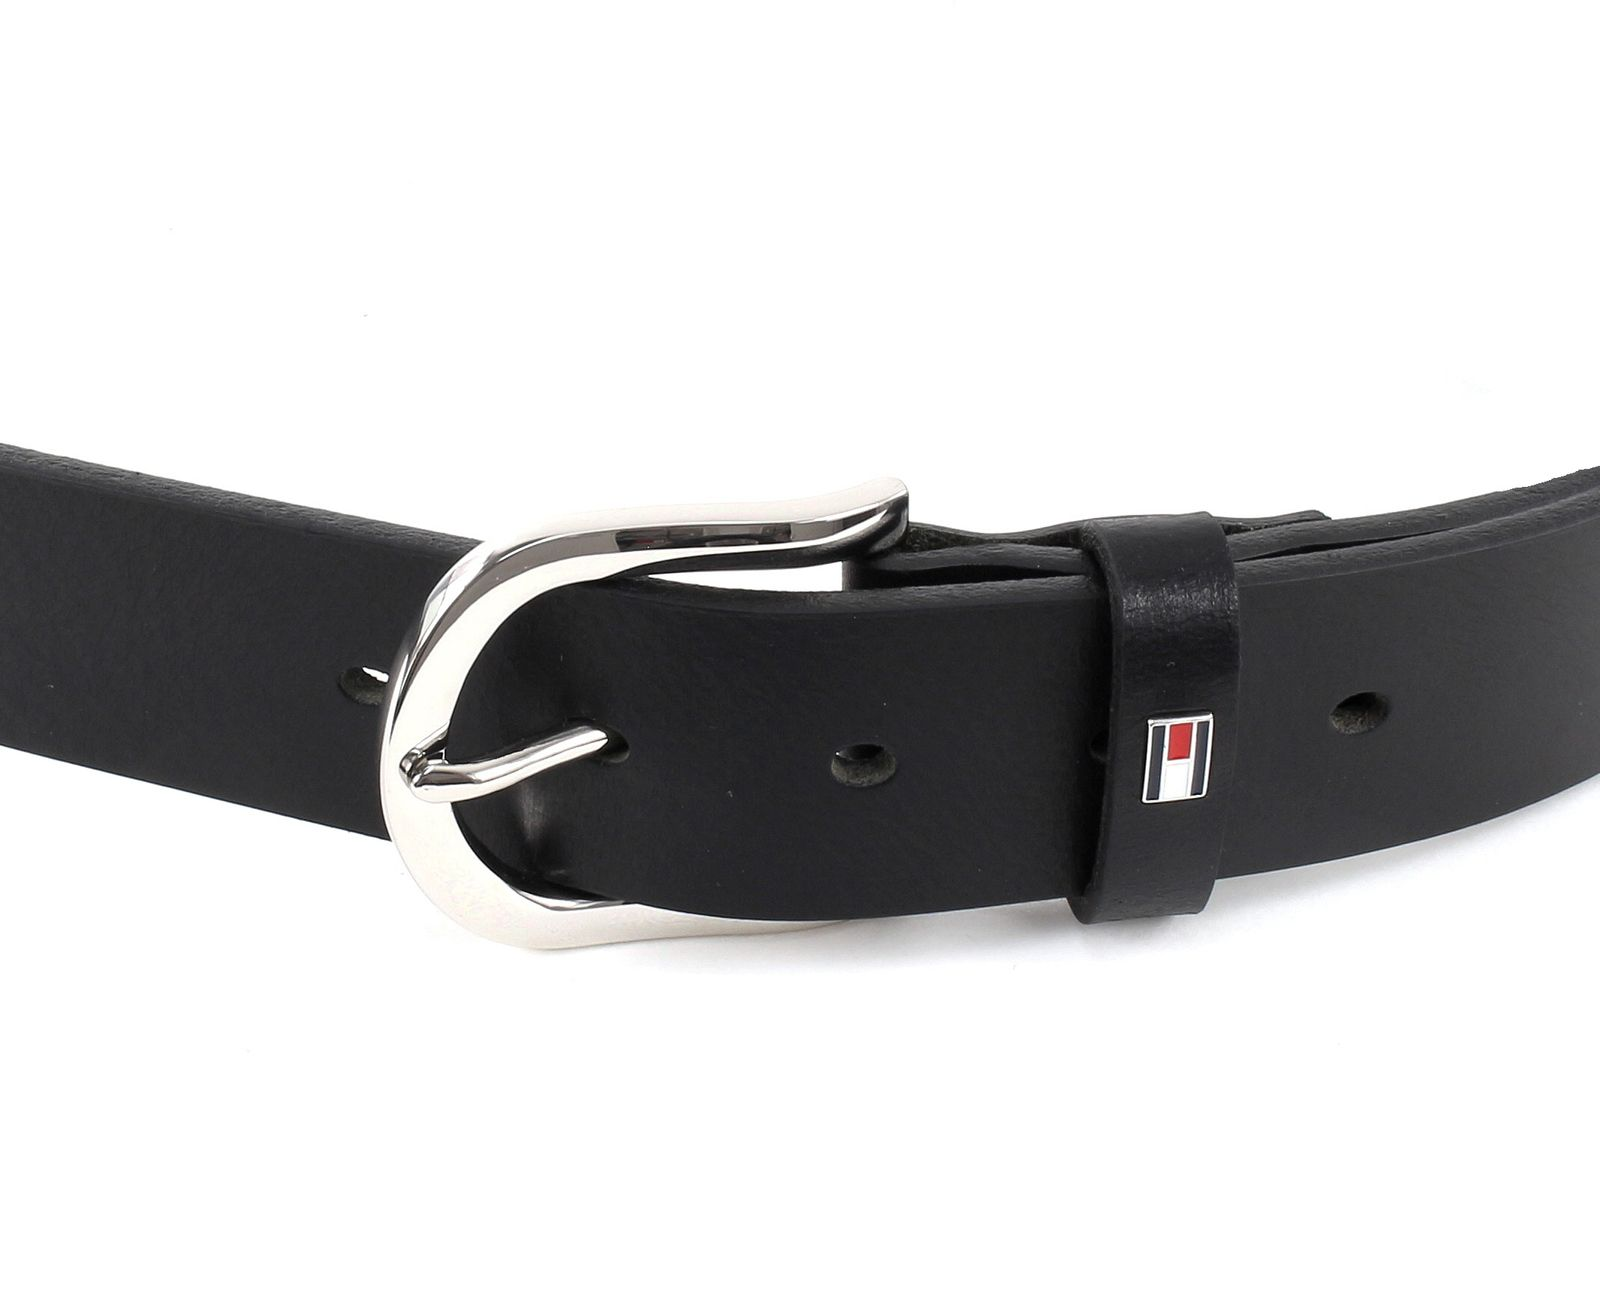 d9d6d4c4aa ... Danny Belt W80 Masters Black / 38,20 €*Tap To CloseOnly possible if you  pay by Paypal, Amazon Payments, Credit Card, Cash on Delivery, ...